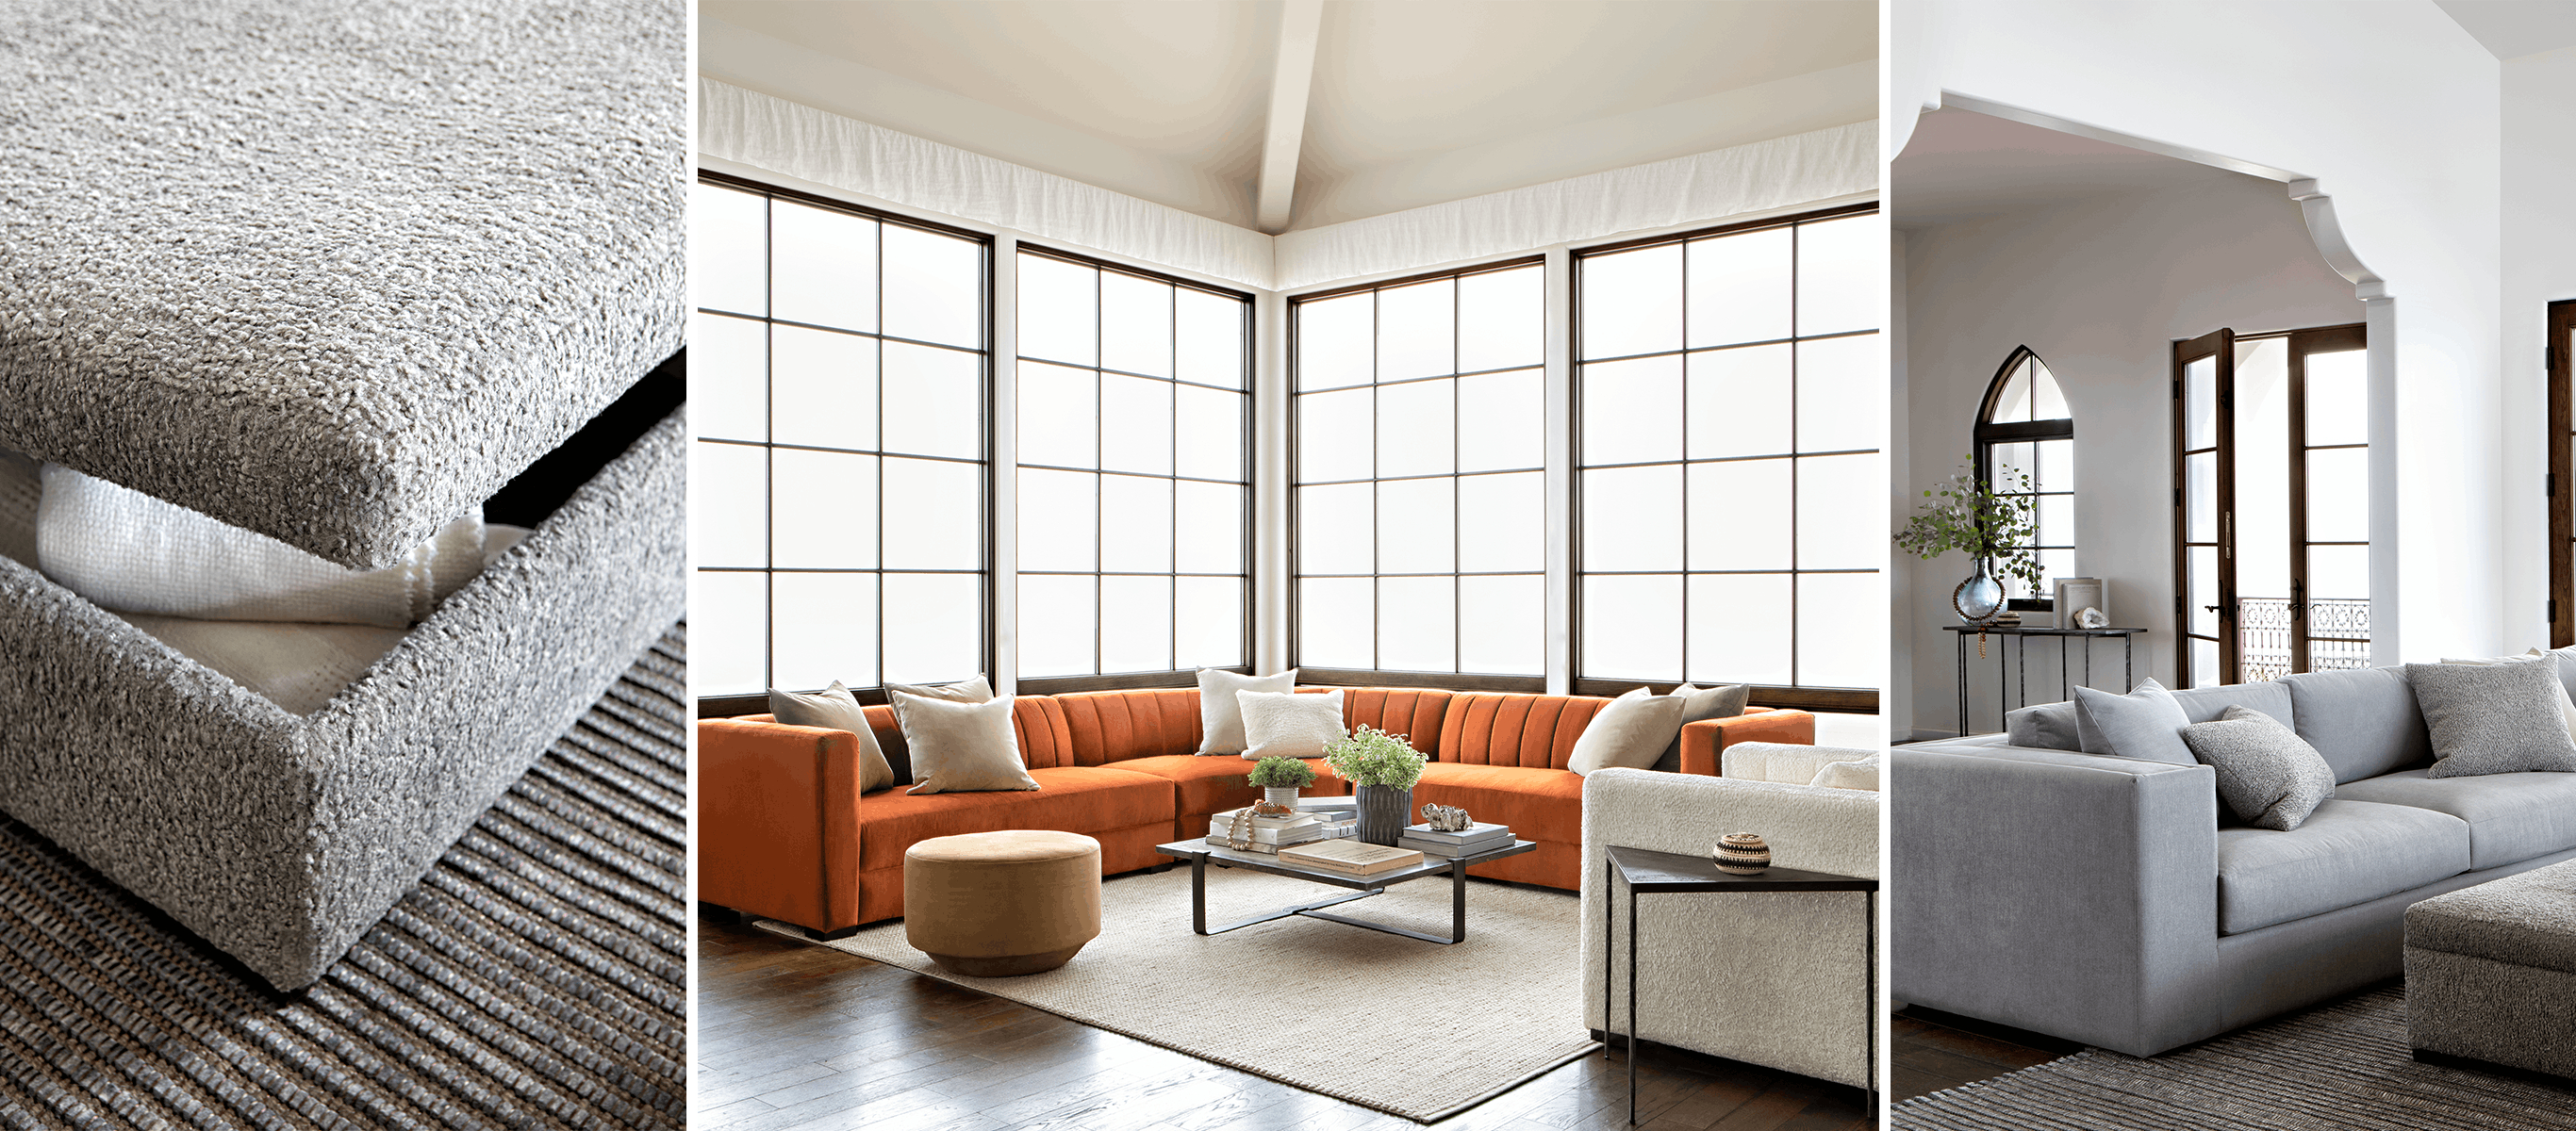 Nate Berkus Just Launched A Home Collection With Hubby Jeremiah Throughout Matteo Arm Sofa Chairs By Nate Berkus And Jeremiah Brent (Image 12 of 20)